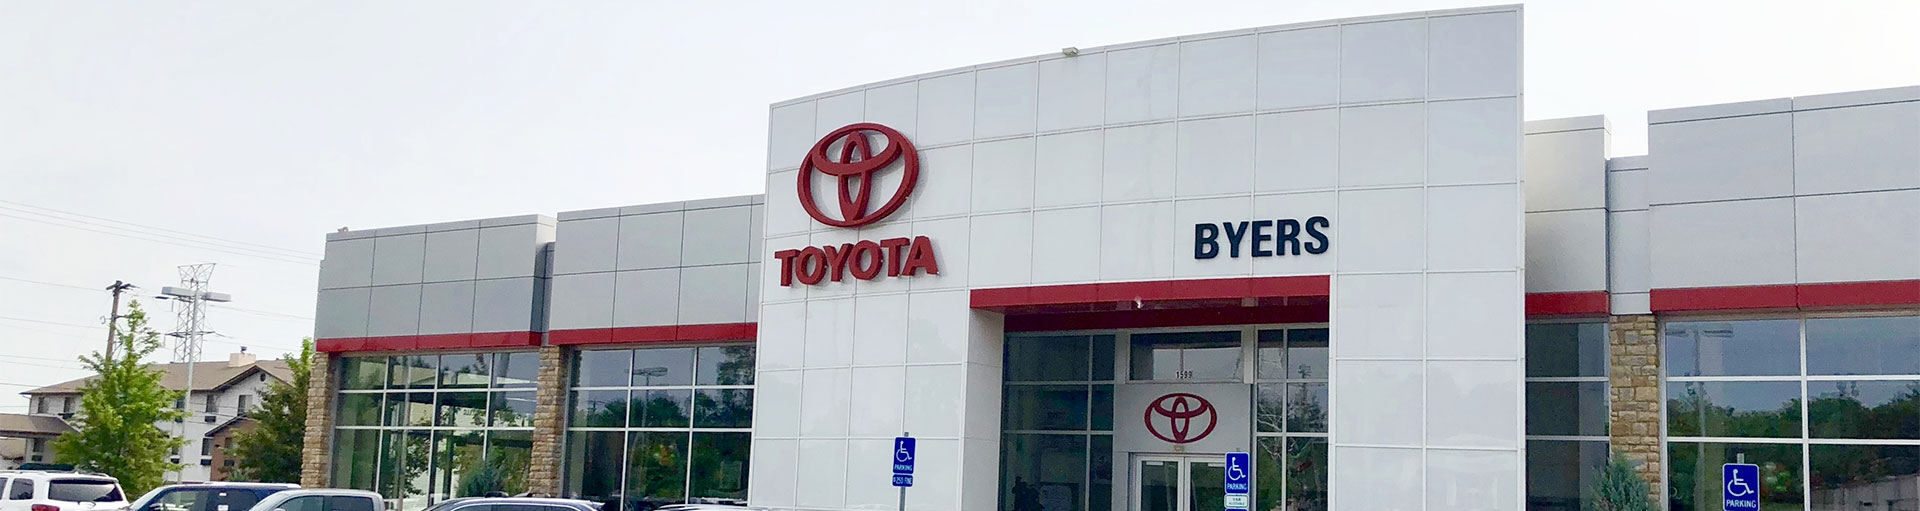 Byers Toyota Service & Parts Specials